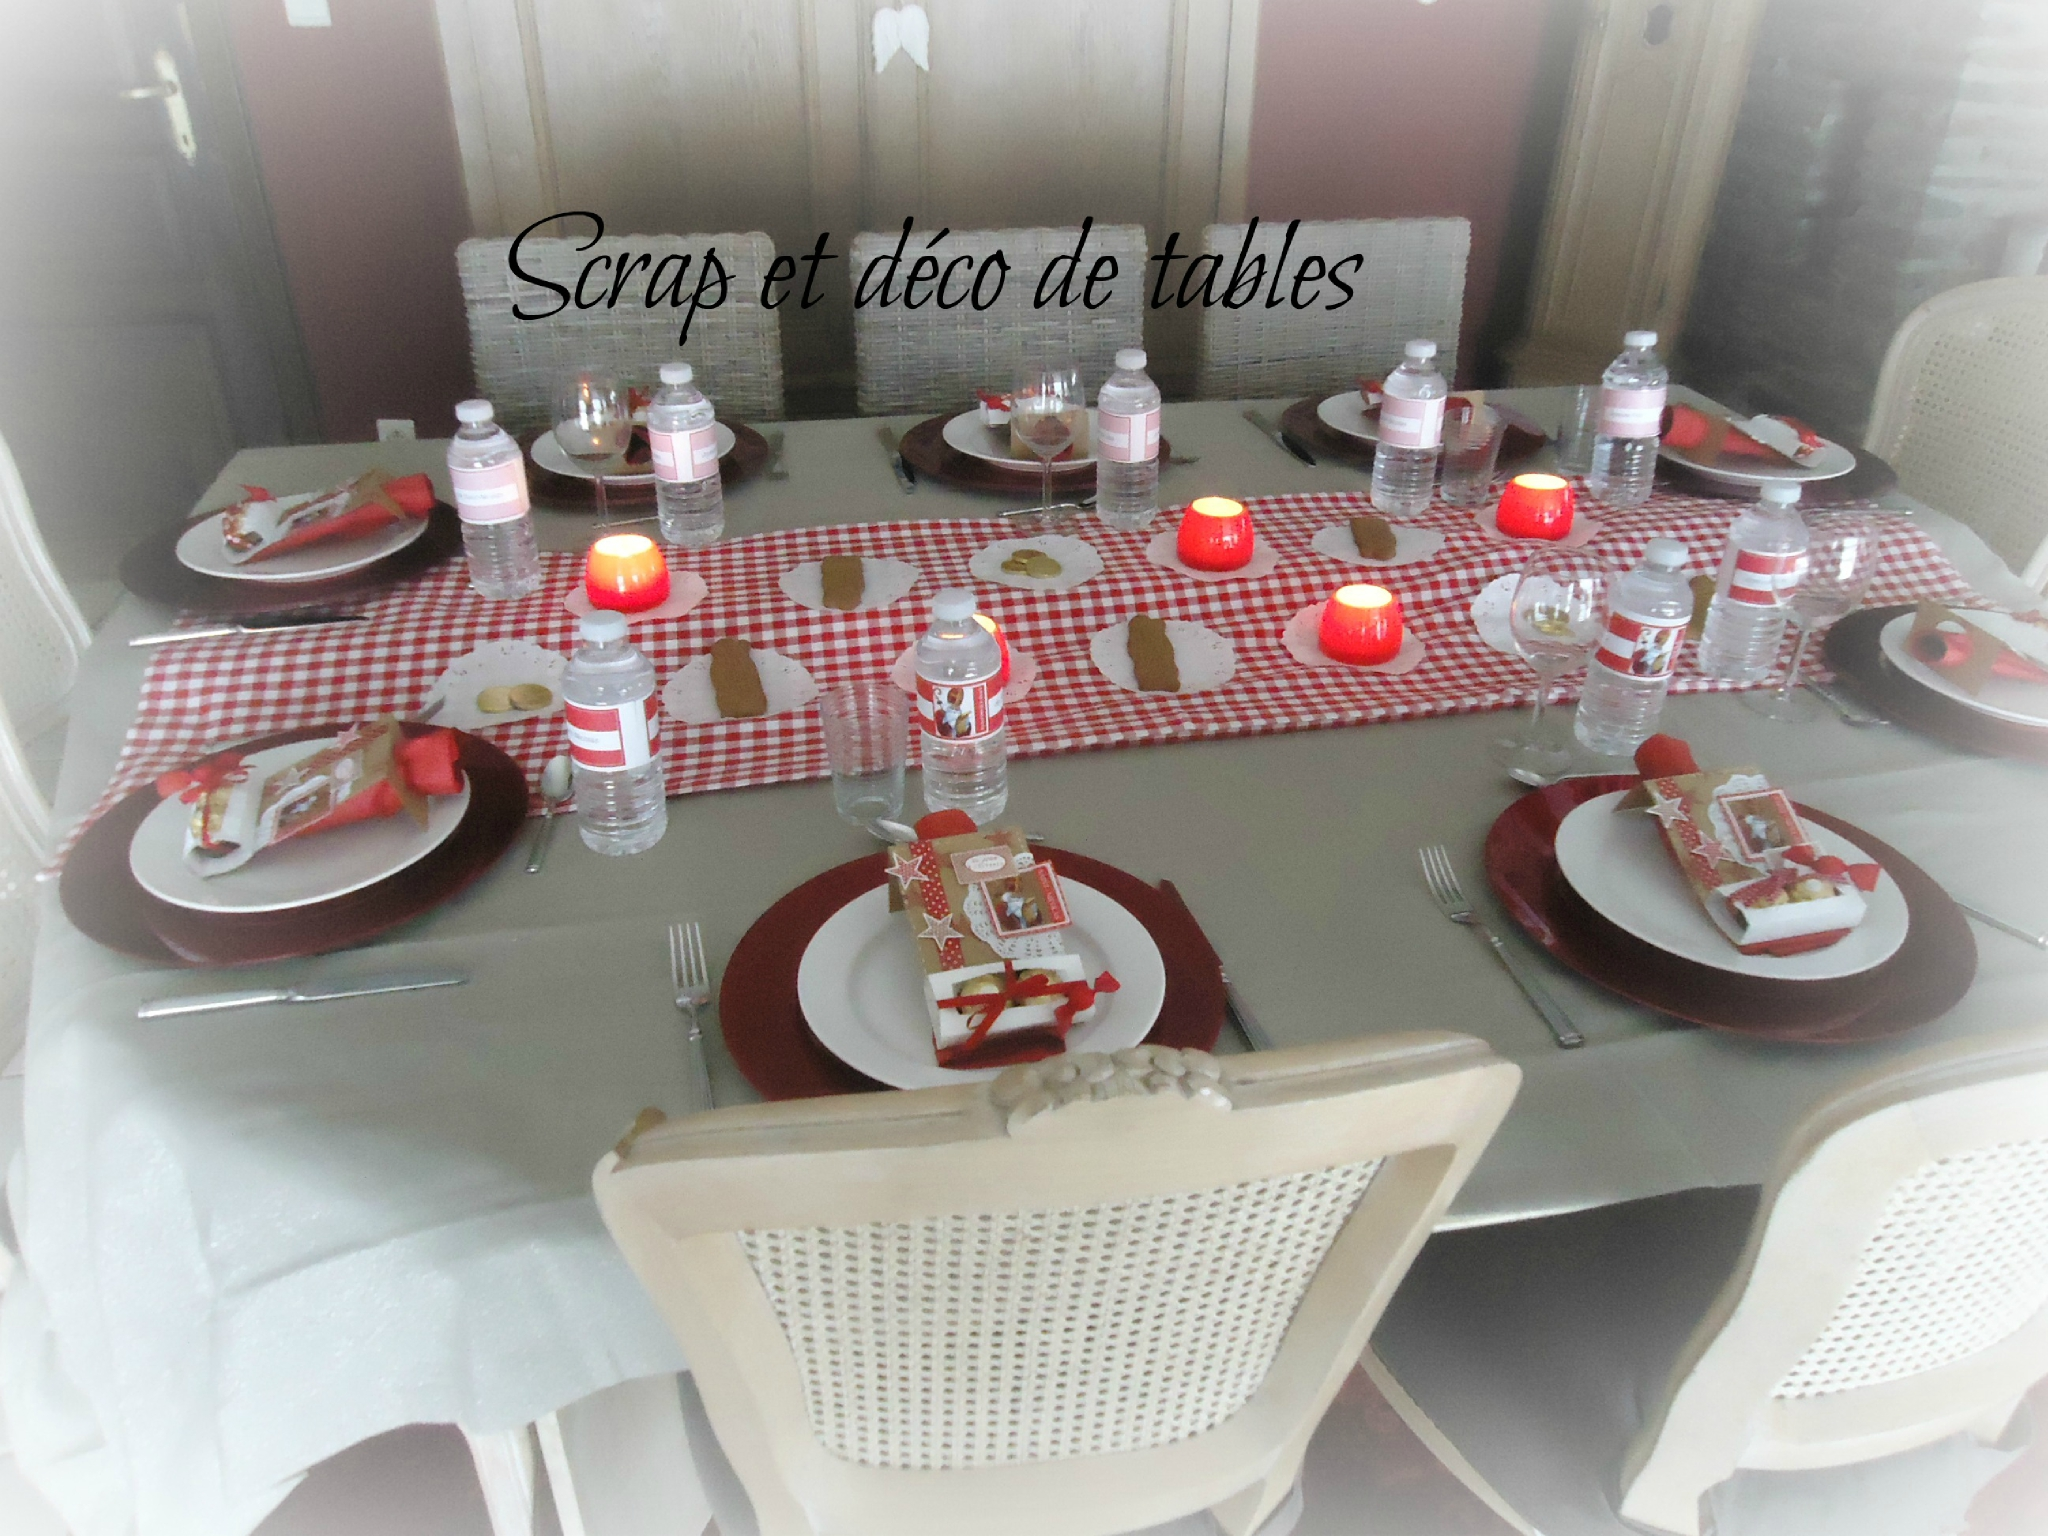 Deco de tables pour la saint nicolas scrap et d co de tables for Decoration de table